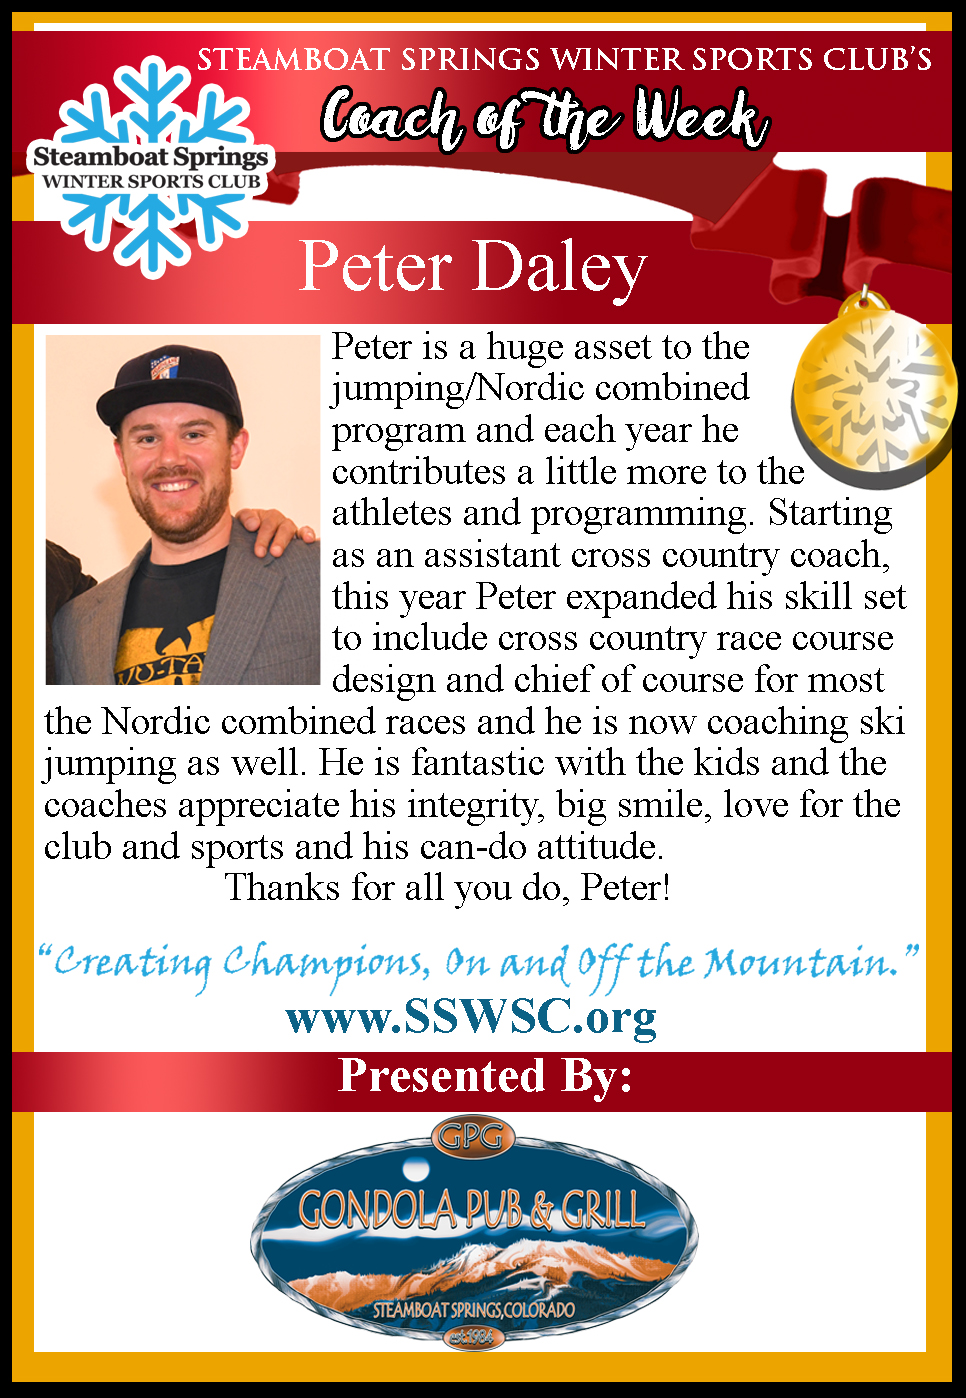 Coach of the Week, Peter Daley